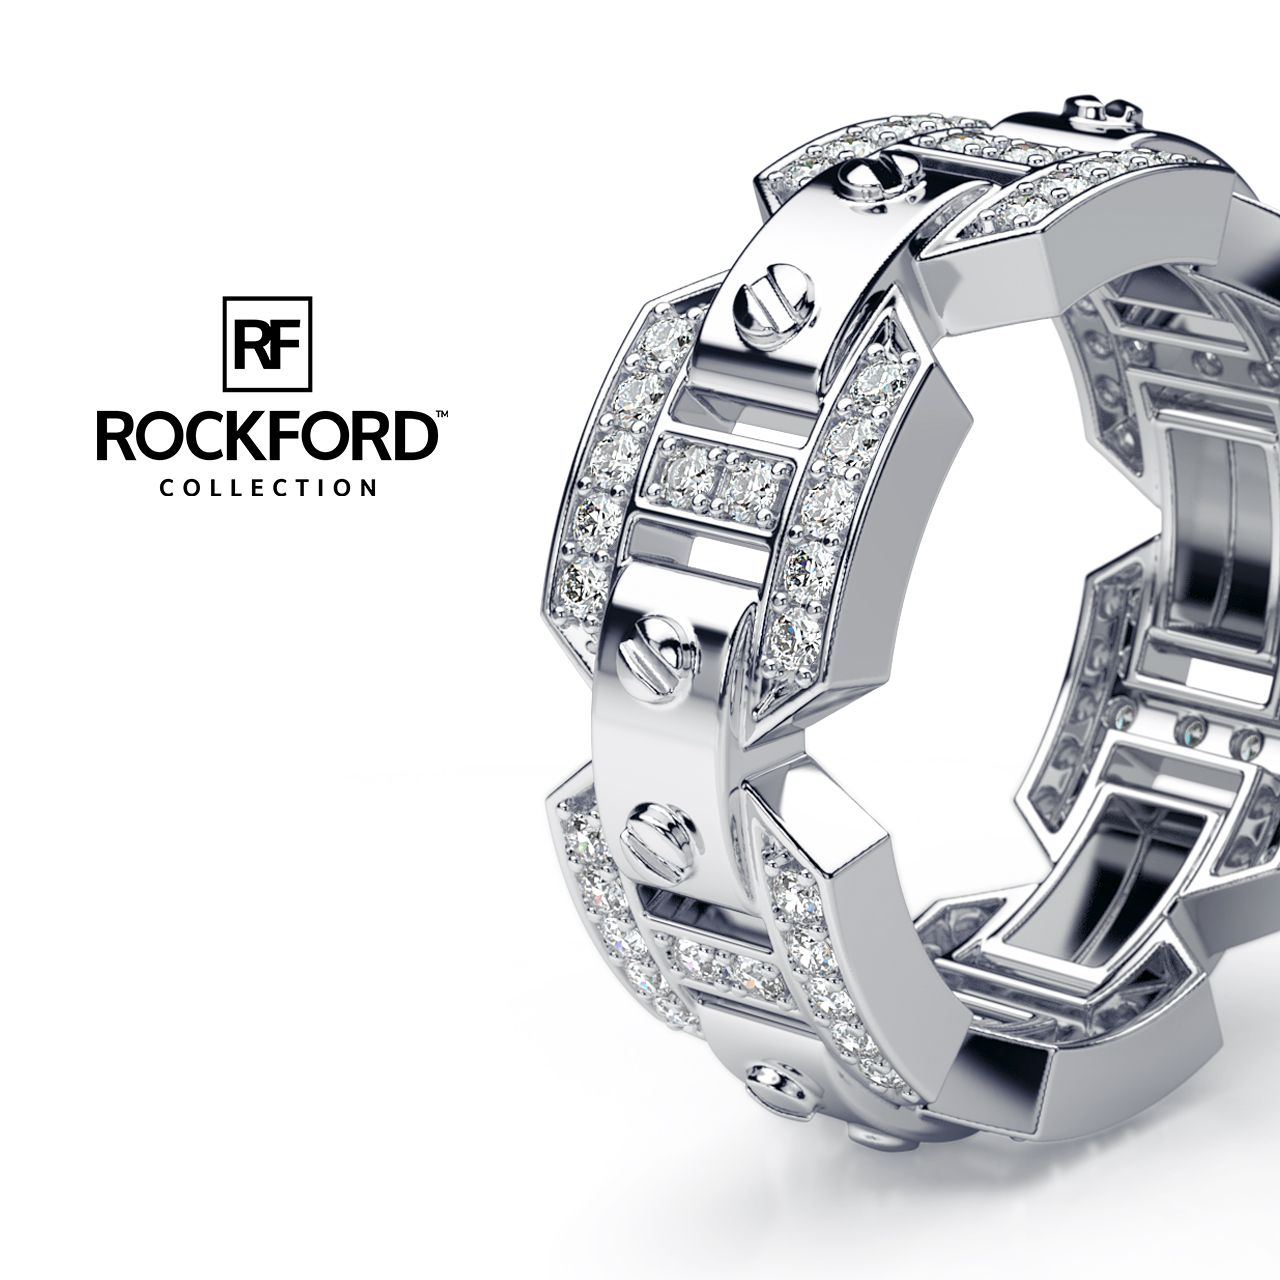 Rockford Collection Where Luxury Meets Art Briggs Gold Mens Wedding Band With Flawless Diamonds At Www Rockfordcollection Worldwide Shipping